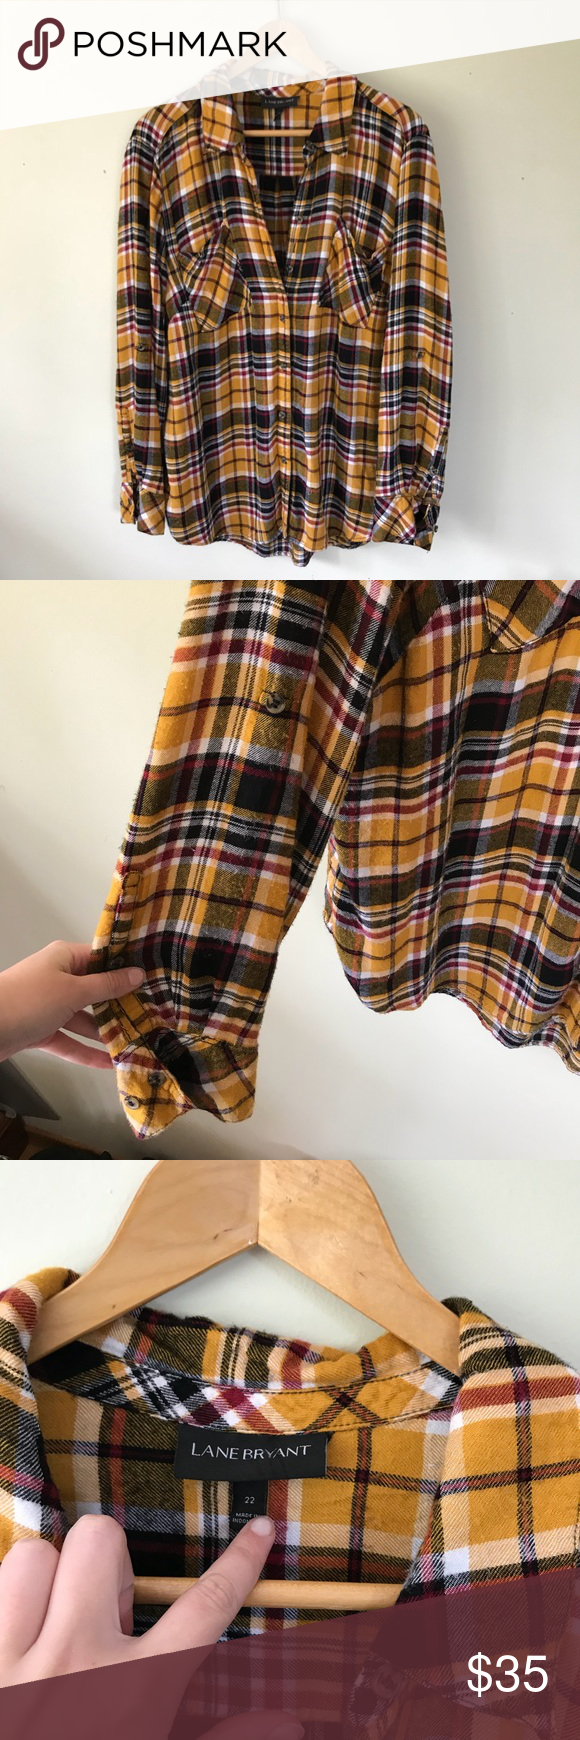 4f08be83dbc Lane Bryant Mustard Yellow Plaid Flannel Shirt Lane Bryant Mustard Yellow  Plaid Flannel Button Down Long Sleeve Shirt Size 22 Pilling Lane Bryant  Tops ...